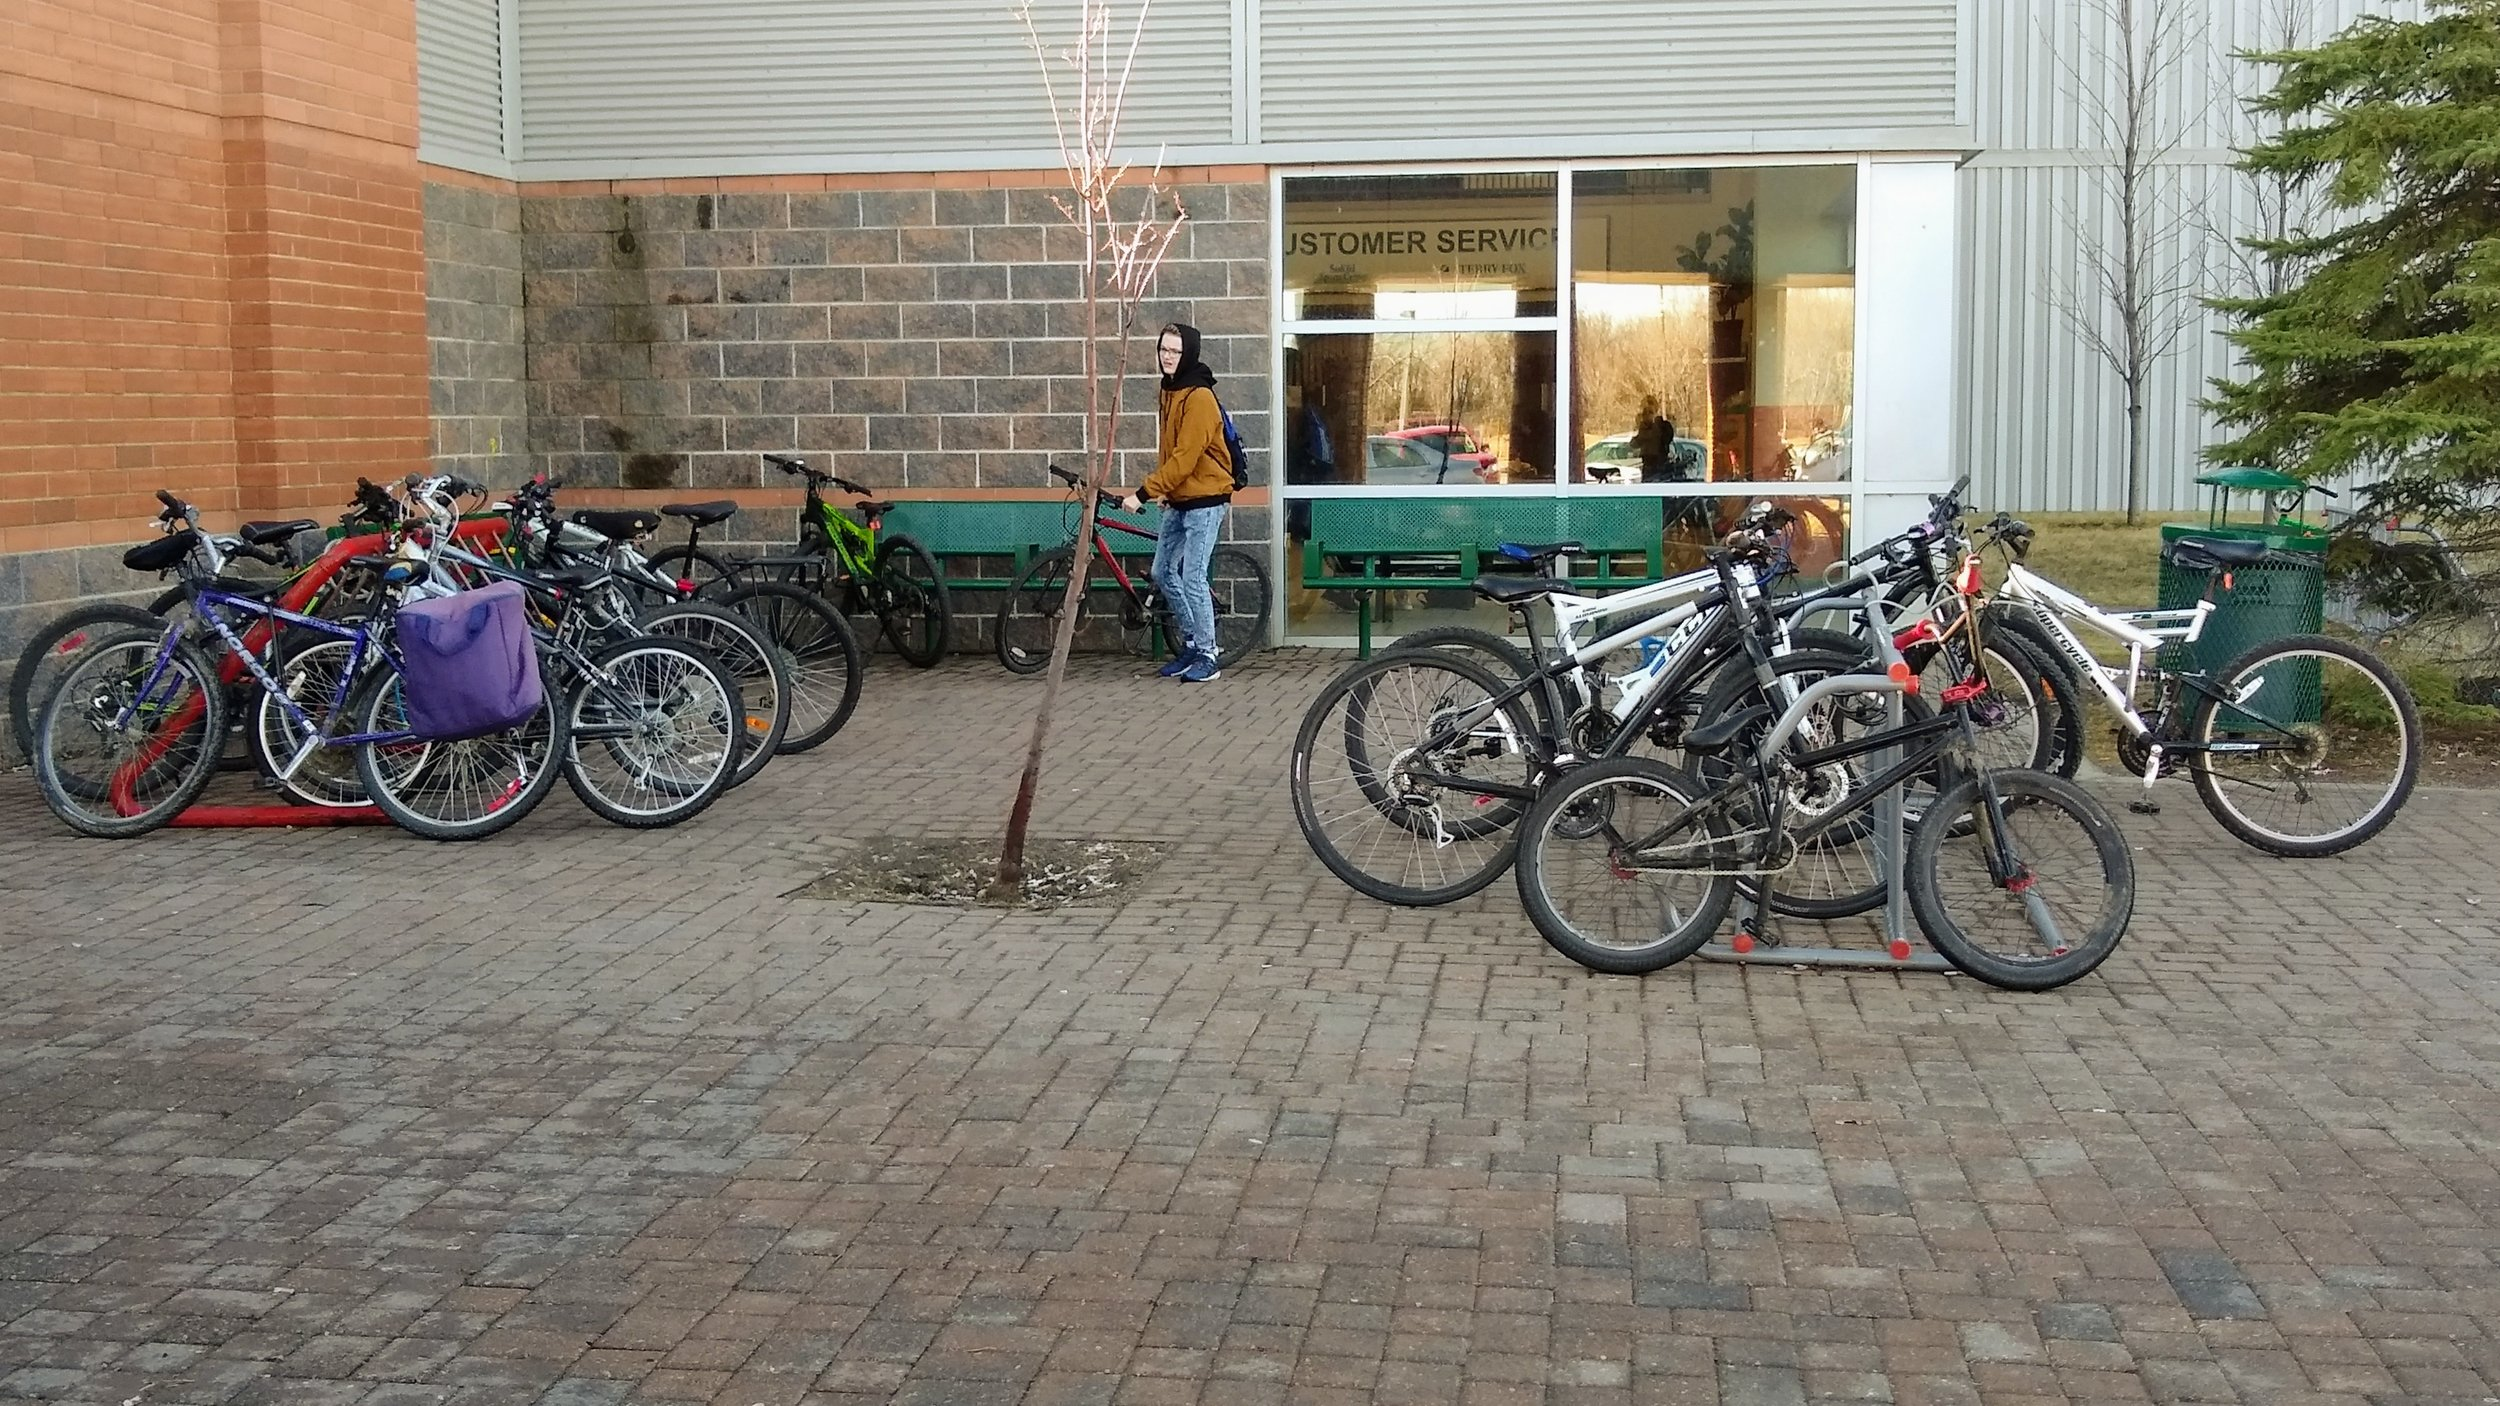 Bikes parked outside a Saskatoon high school show that even highschoolers do commute by bike.